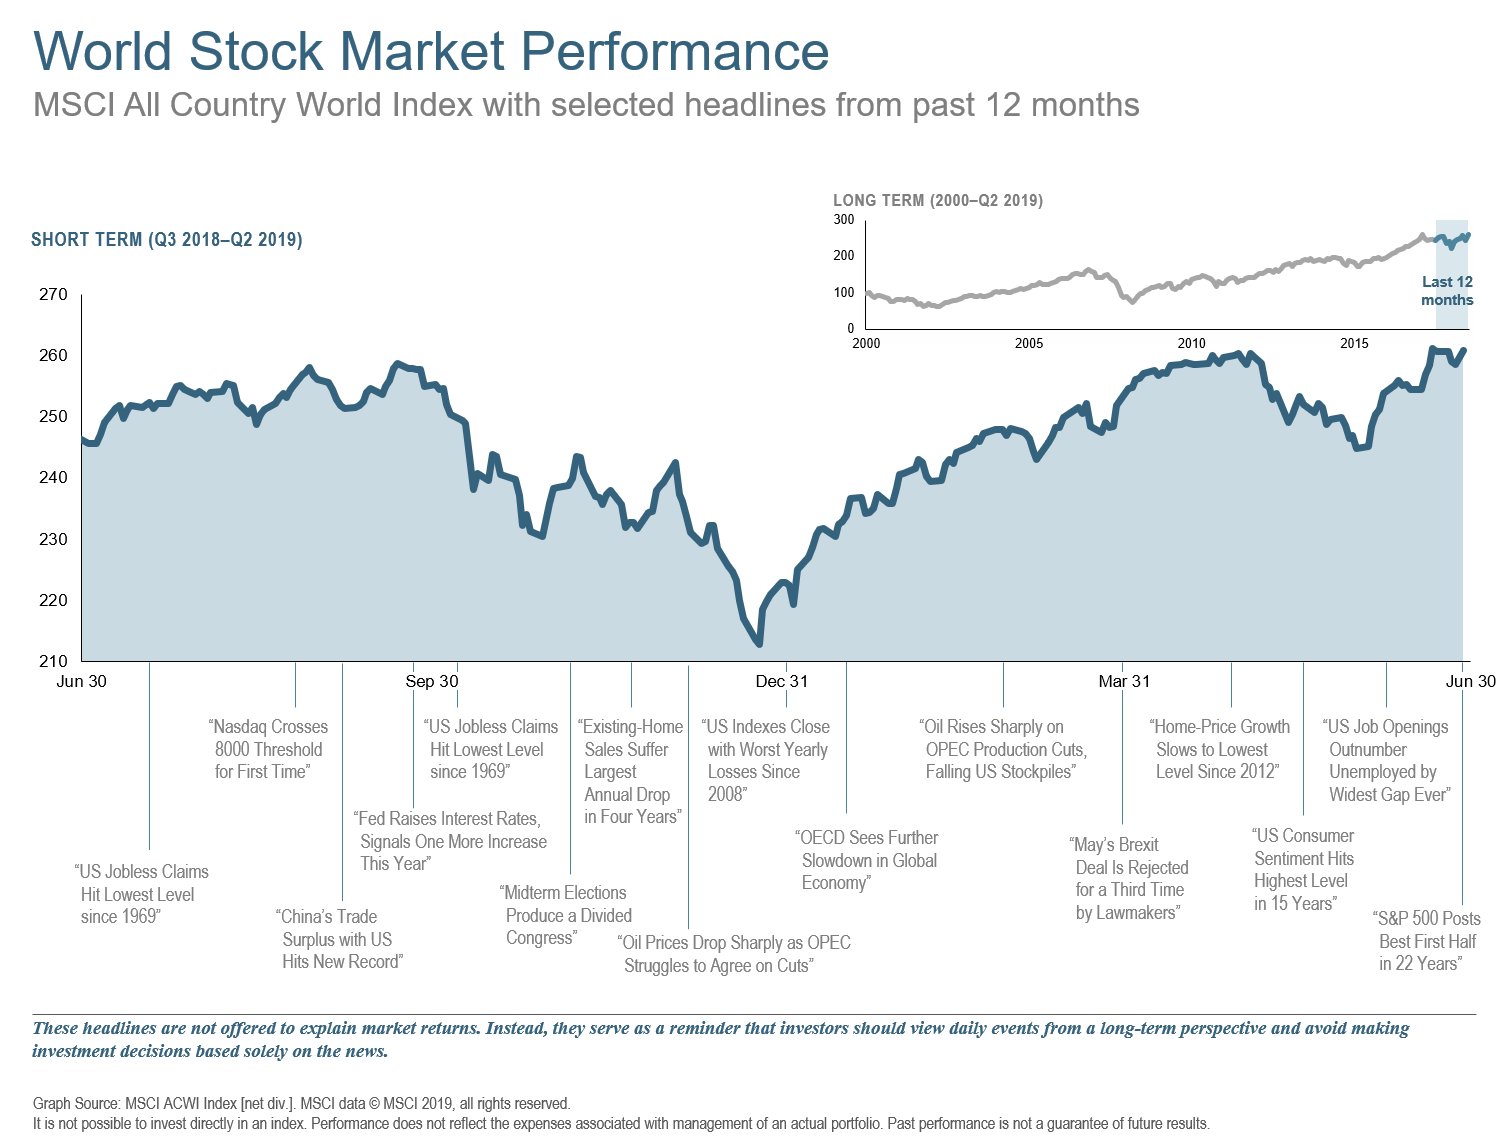 Q2 2019 12 Month World Stock Market Performance